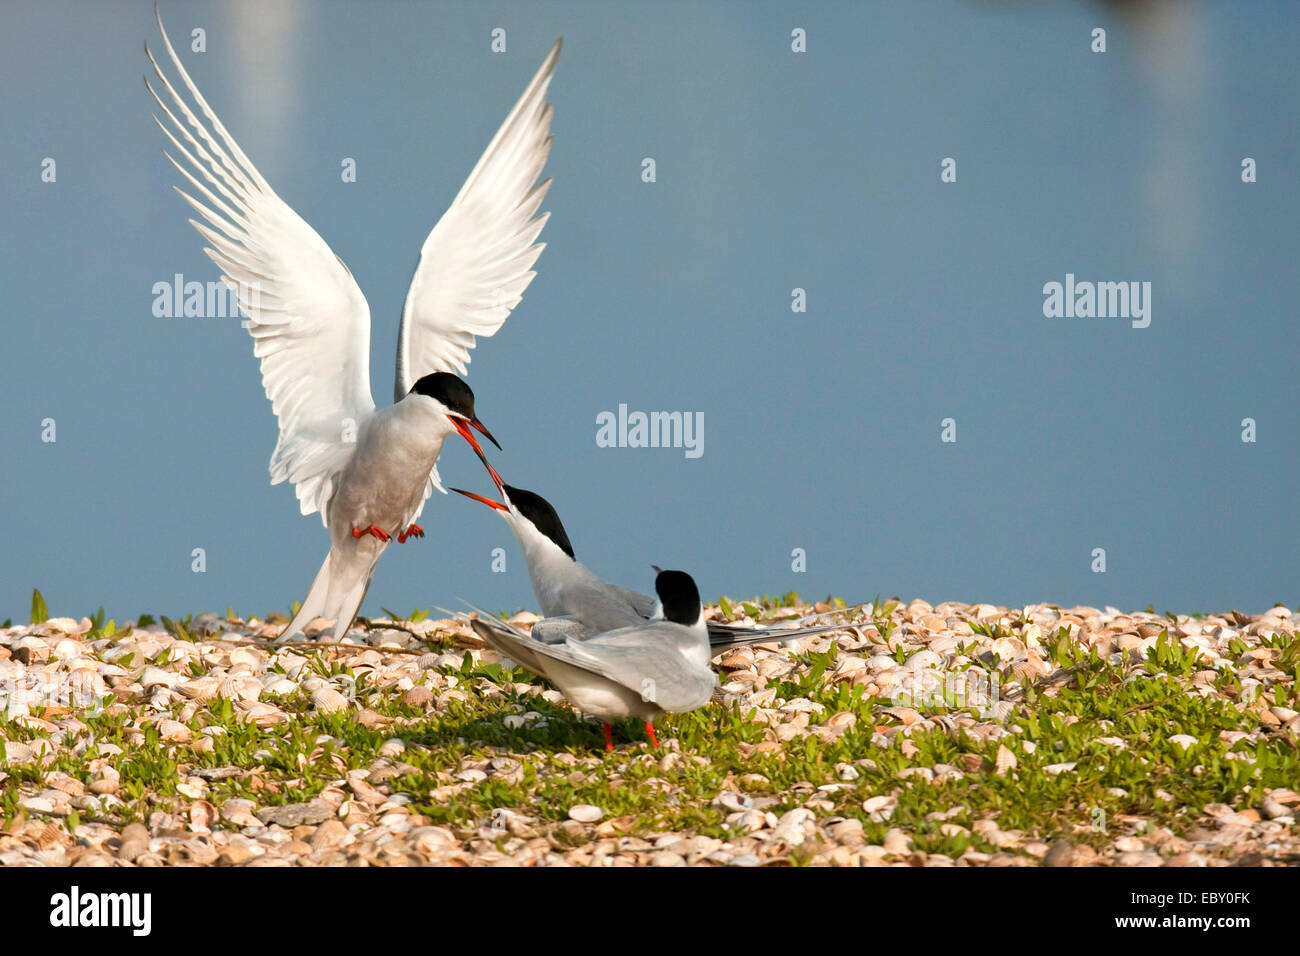 common tern (Sterna hirundo), three birds attacking each other at a shore covered with grass and countless seashells, - Stock Image